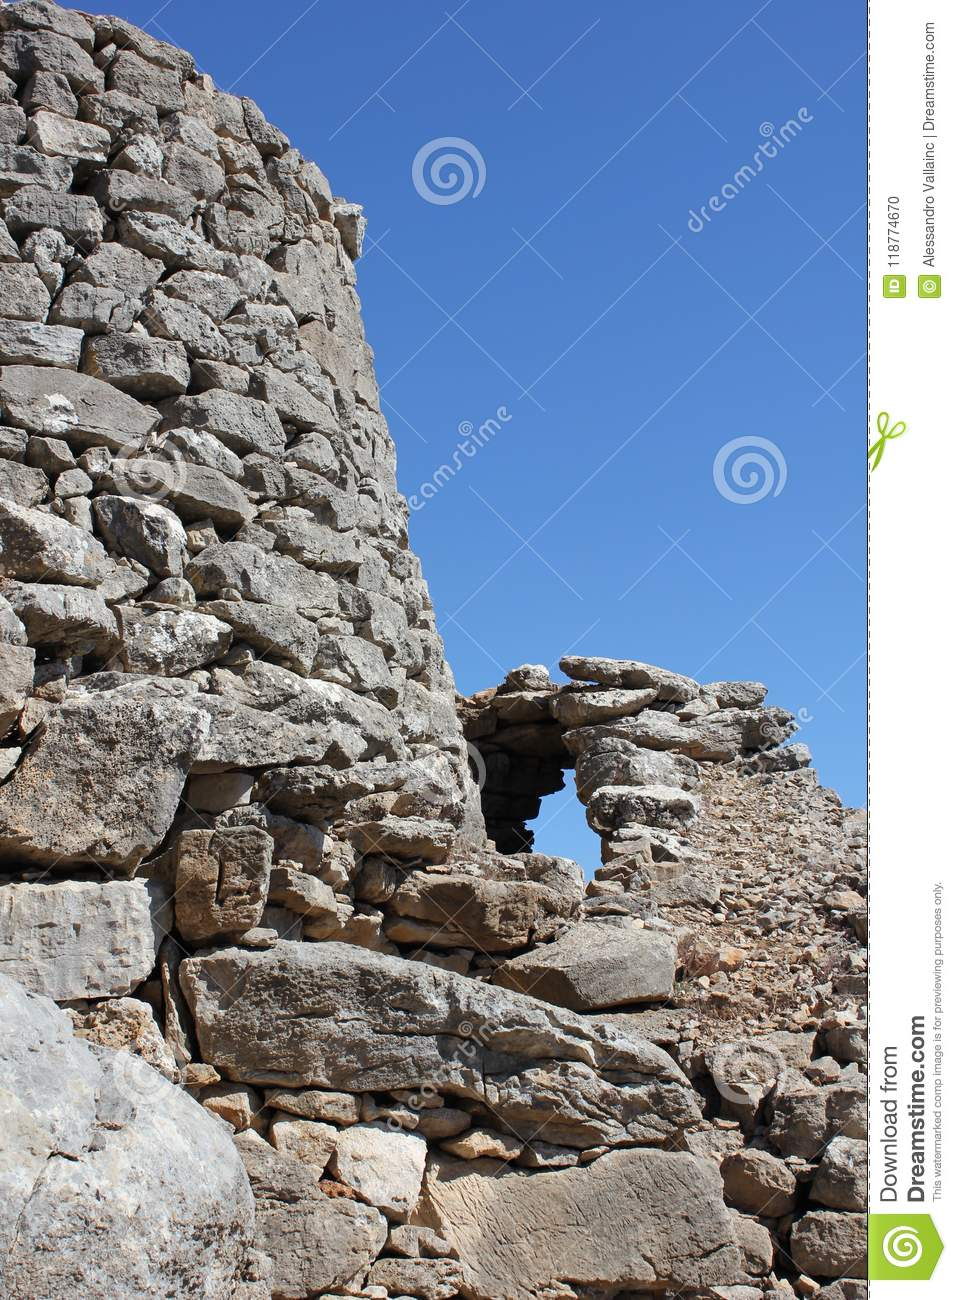 Nuraghe is a typical ancient rock building of the Sardinia island - Italy